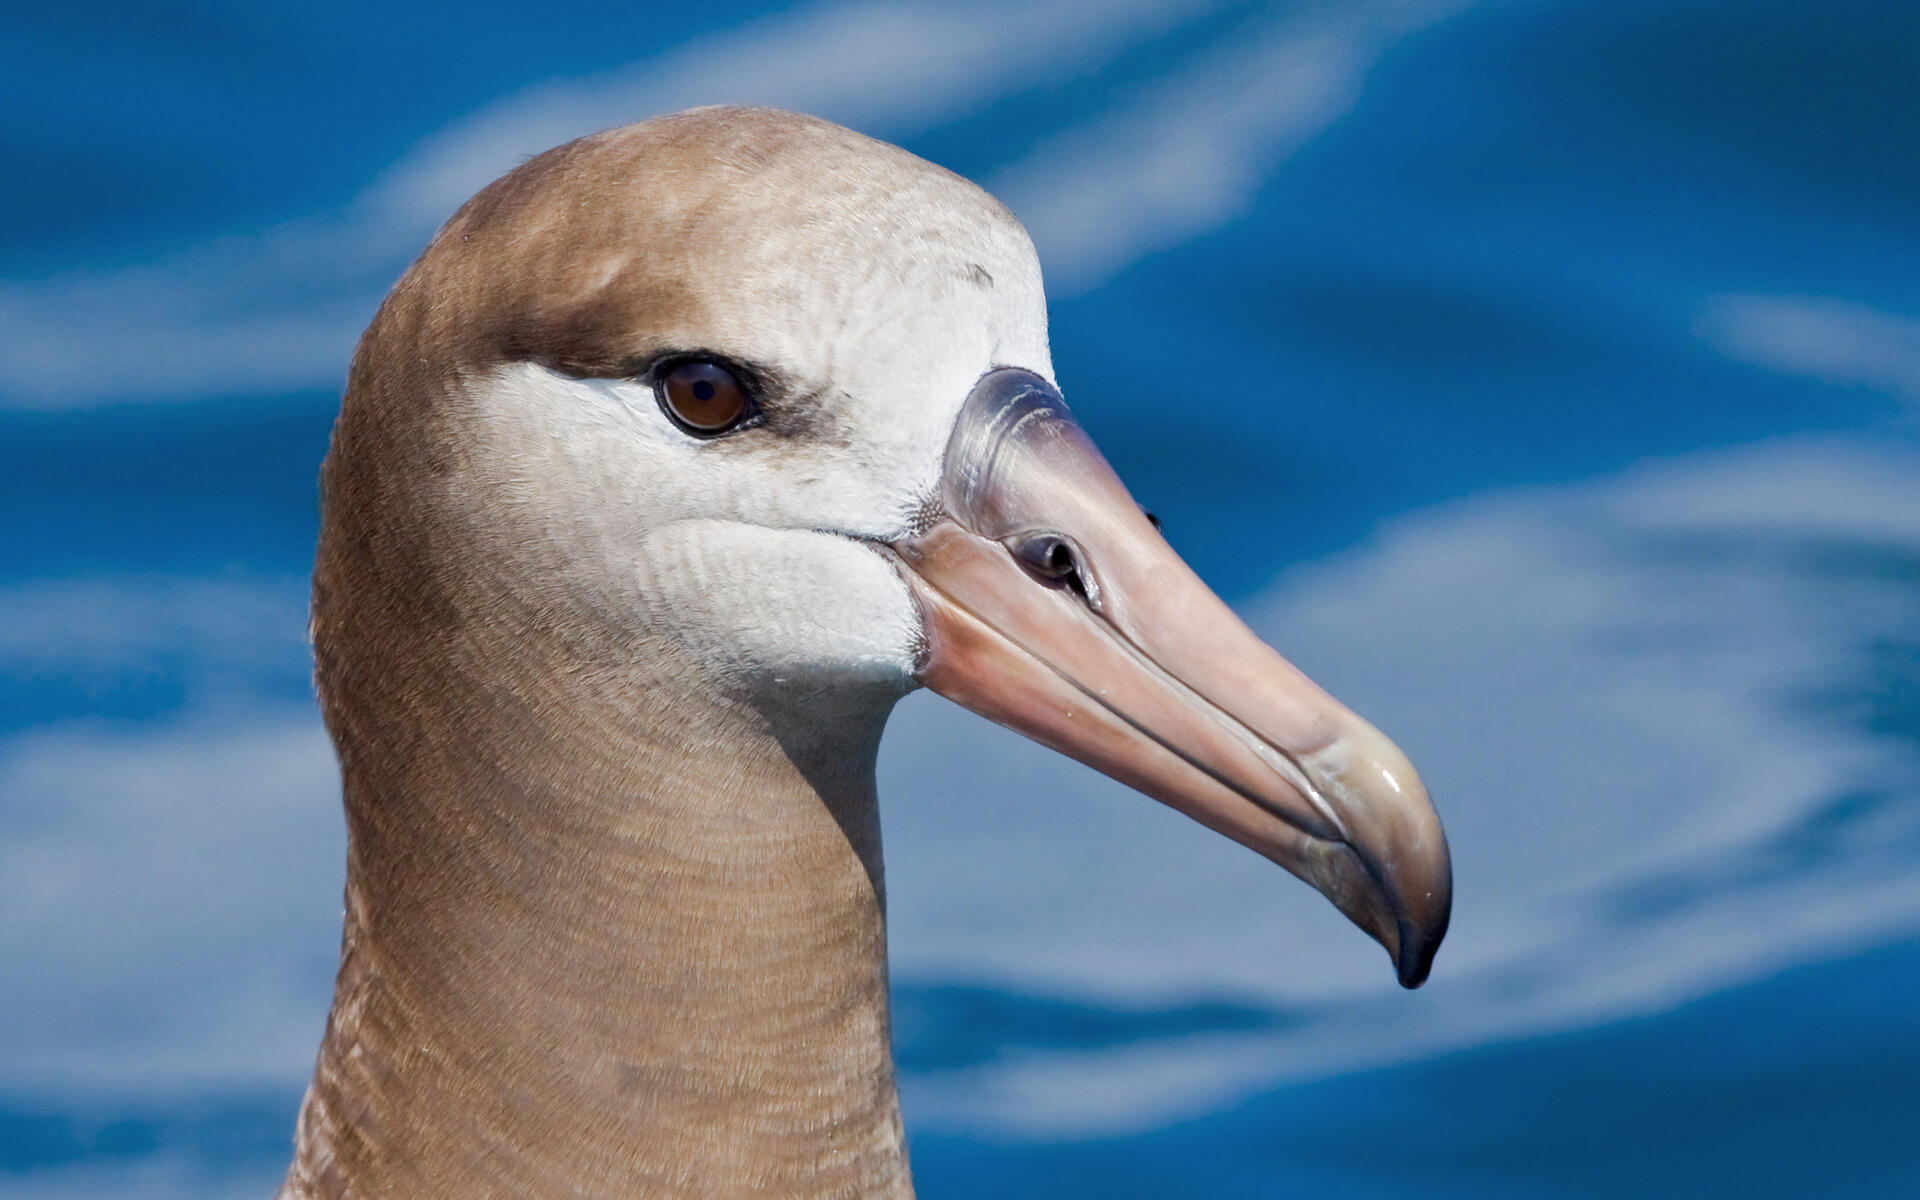 https://i2.wp.com/www.audubon.org/sites/default/files/styles/hero_cover_bird_page/public/Black-footed%20Albatross%20b57-10-017_V.jpg